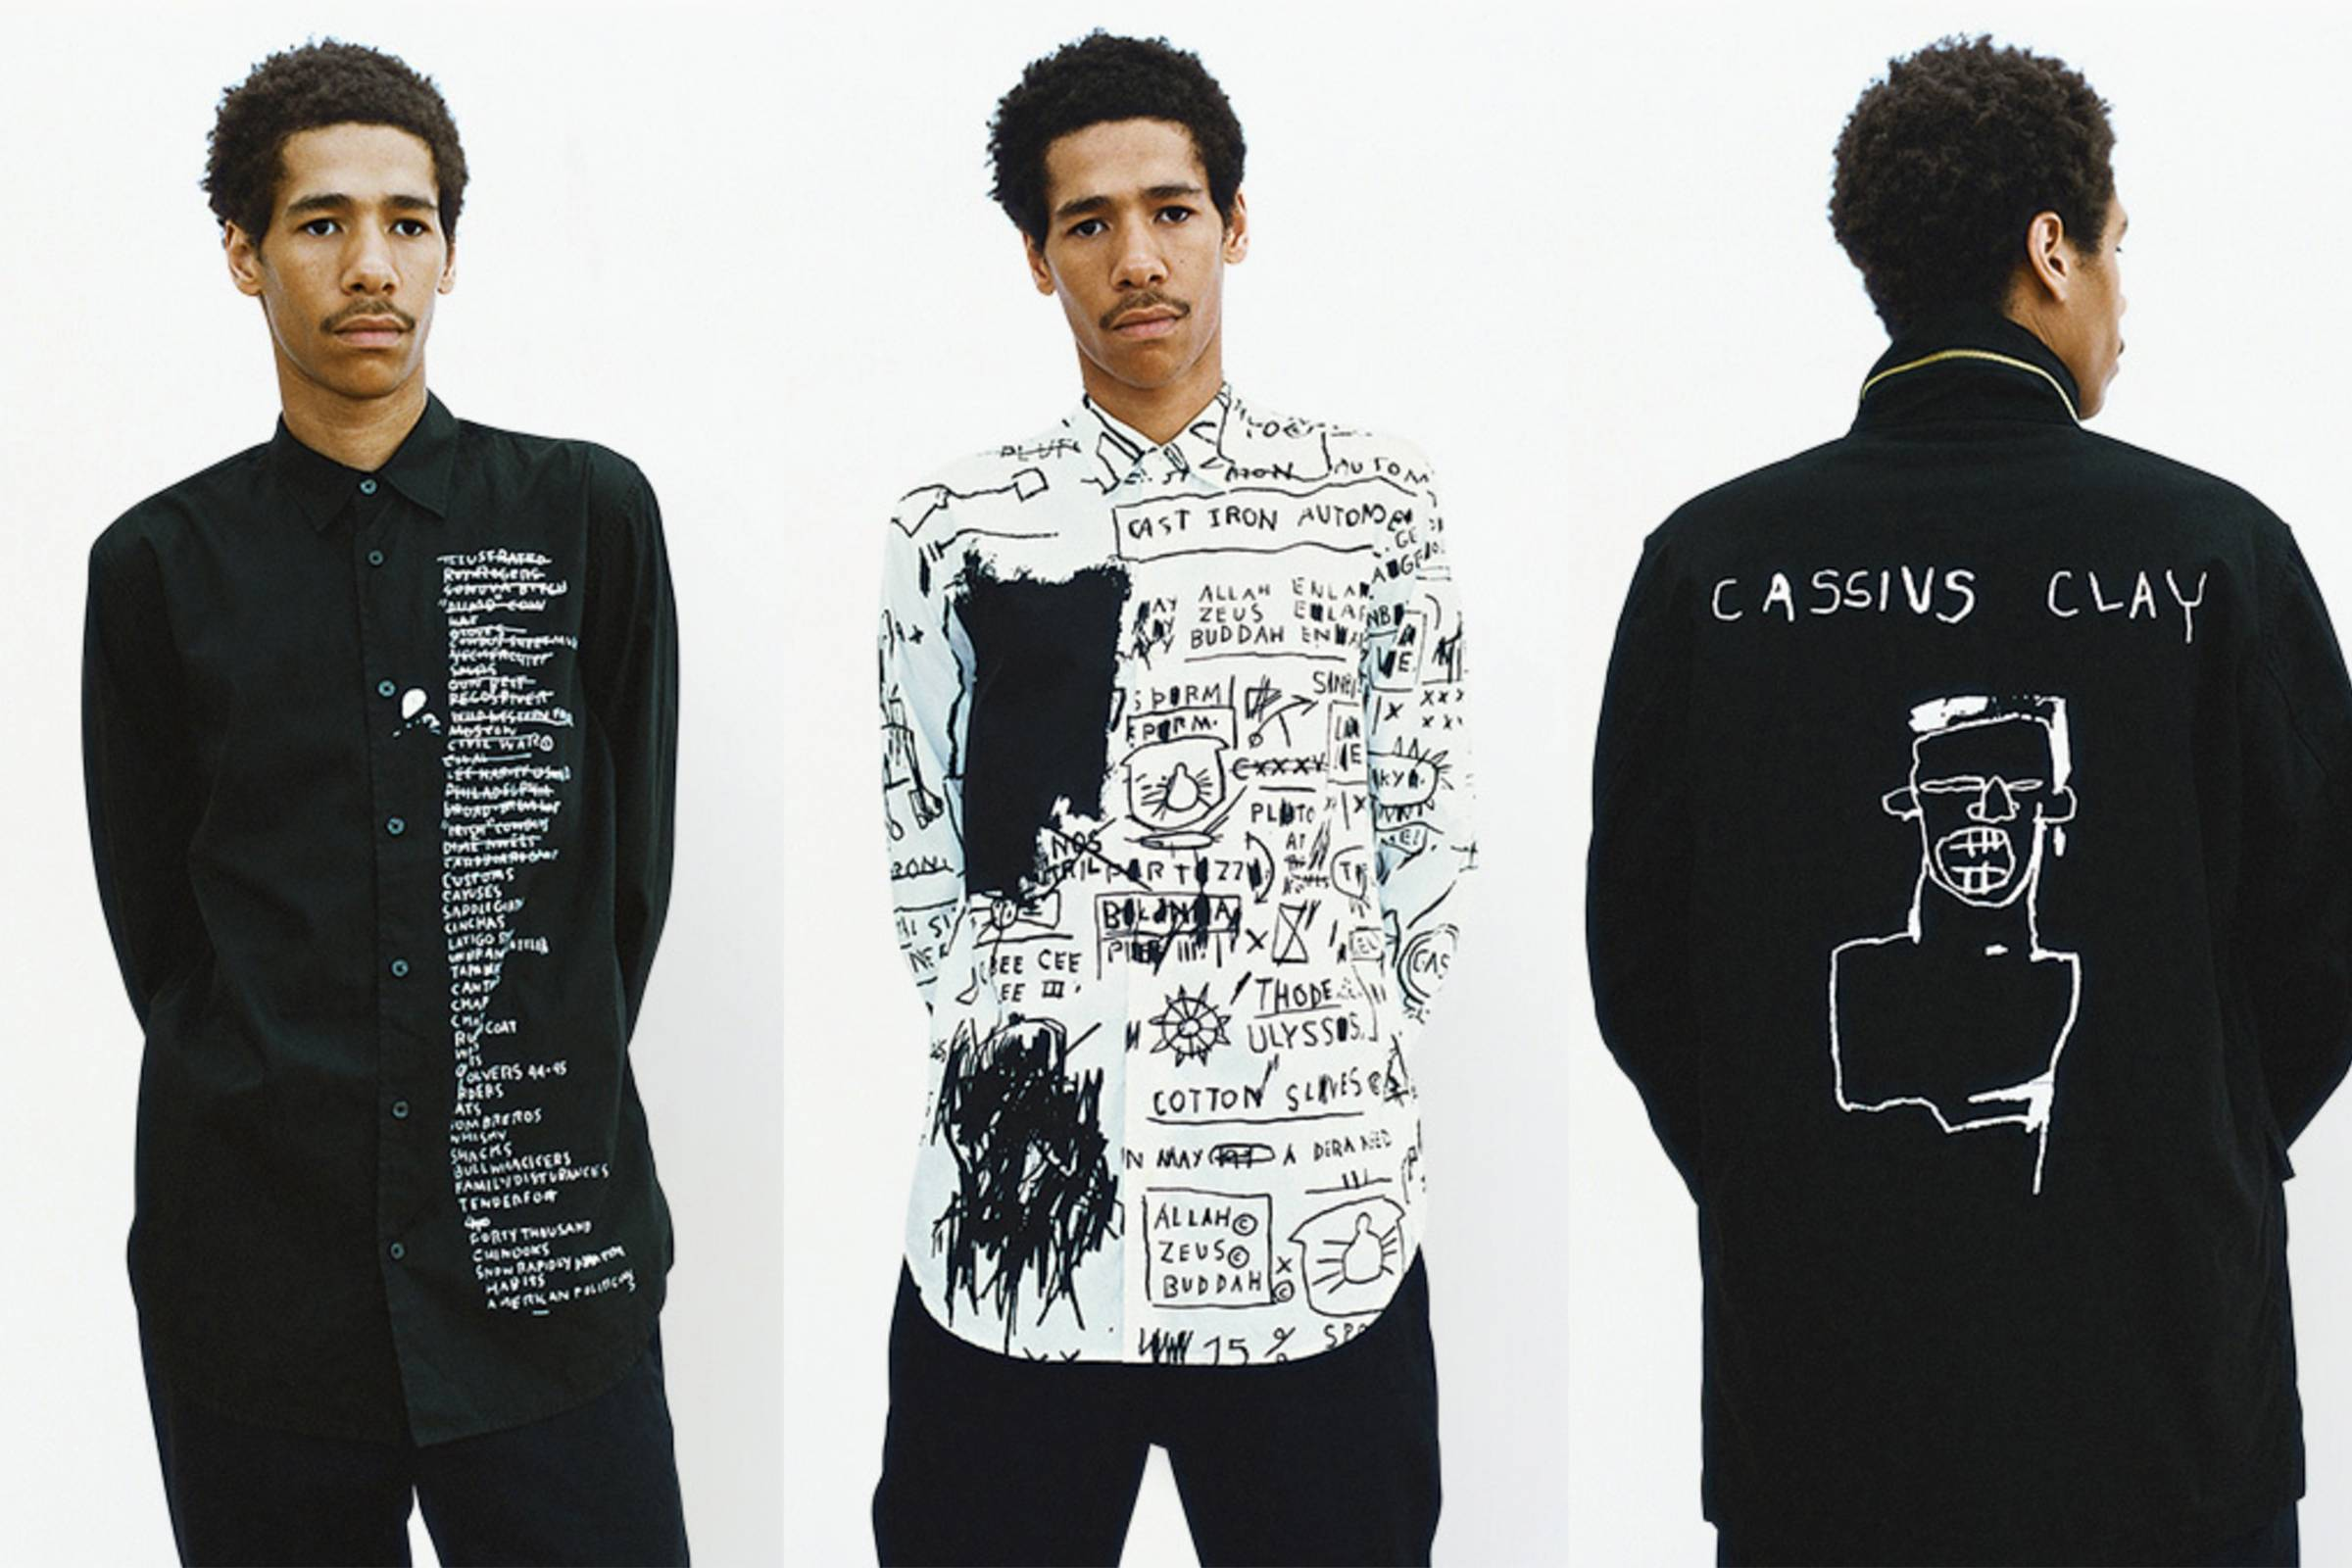 1fc339a905a1 In September 2013, Supreme announced an official collaboration with the  Basquiat Estate. Taking a deep dive into Basquiat's archive, the  collaboration ...